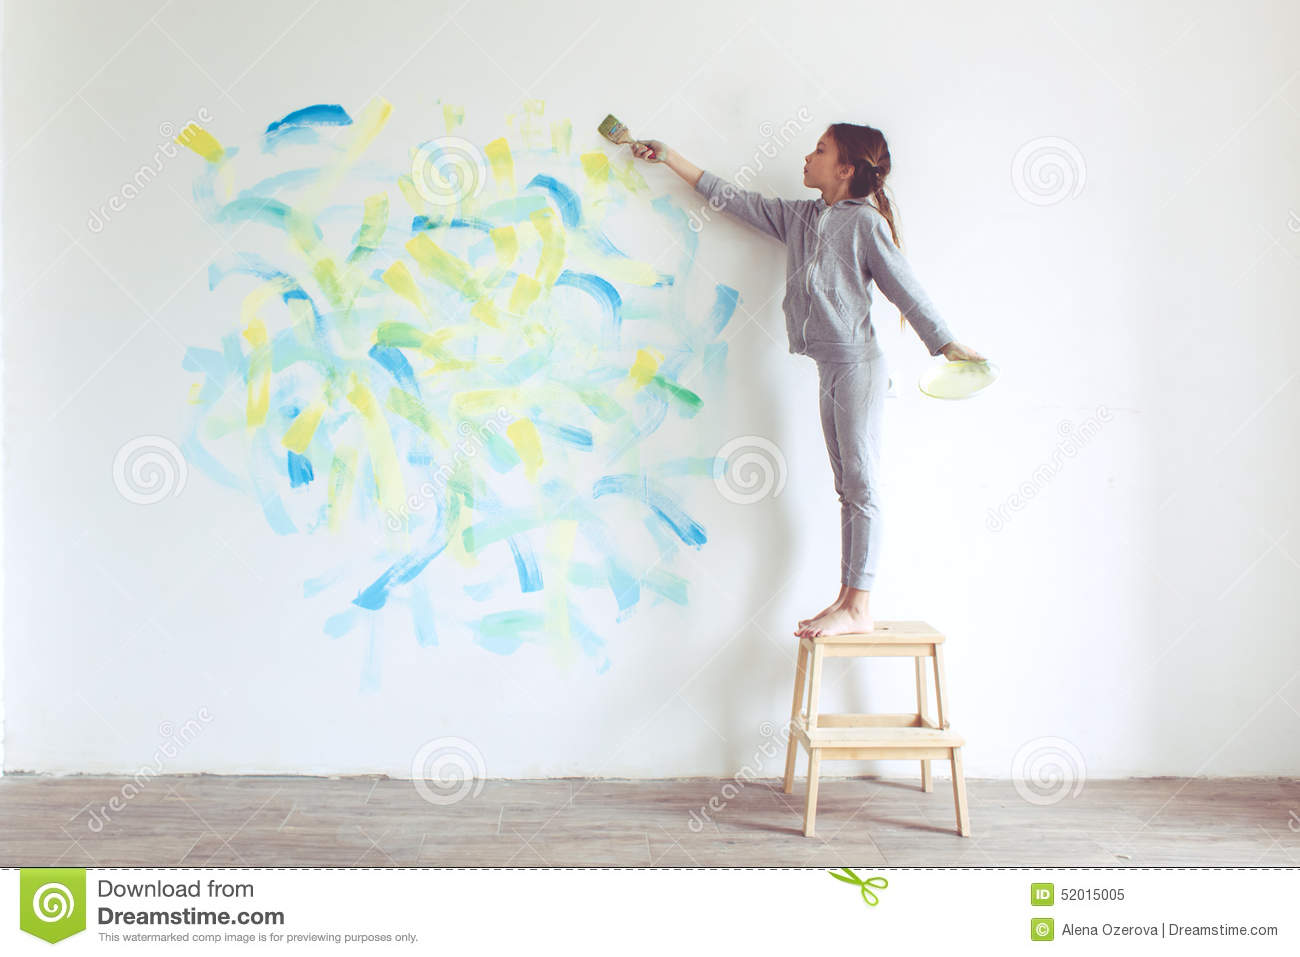 interior design house outlet with Stock Photo Child Painting Wall Years Old Girl Home Instagram Style Toning Image52015005 on theradiator pany co in addition Stock Photo Child Painting Wall Years Old Girl Home Instagram Style Toning Image52015005 also 215984 as well 1869 Set De 6 Paires De Baguettes Chinoises besides Etihad Airways Residences A380.